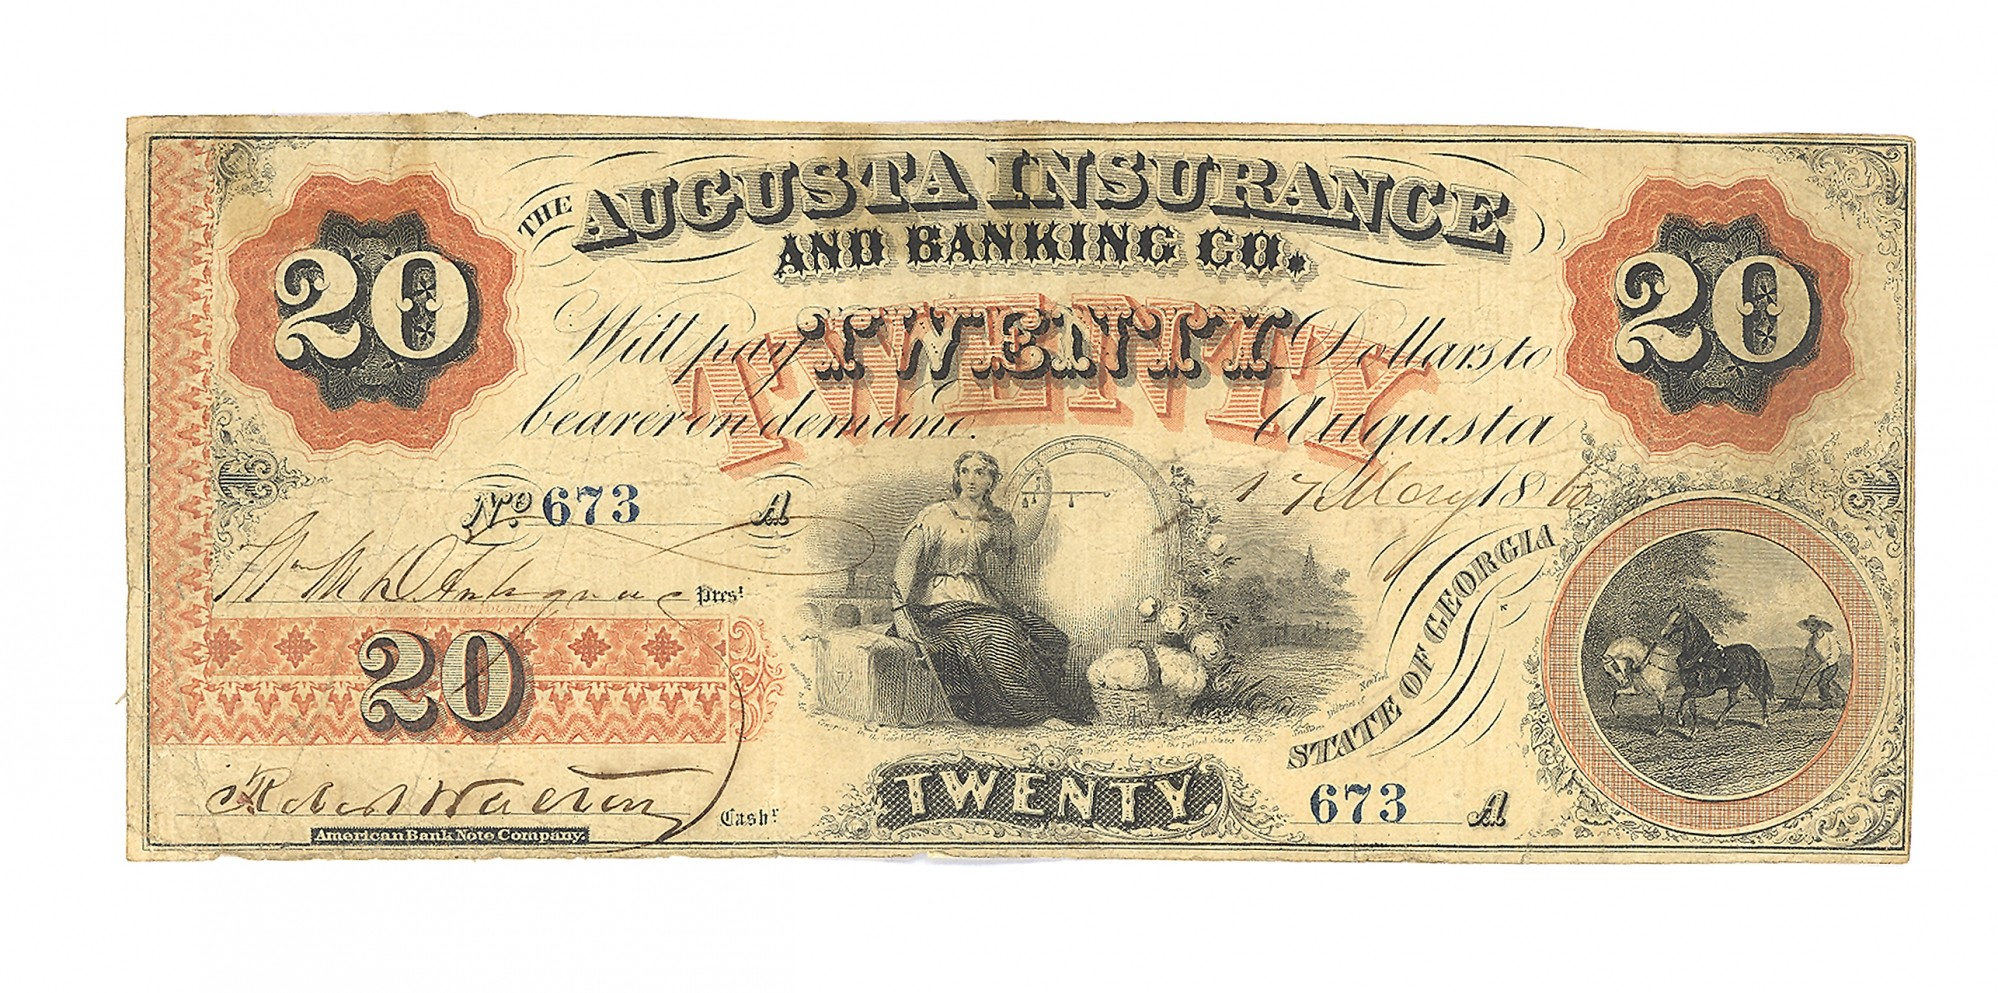 AUGUSTA INSURANCE & BANKING CO., AUGUSTA, GEORGIA, $20 NOTE